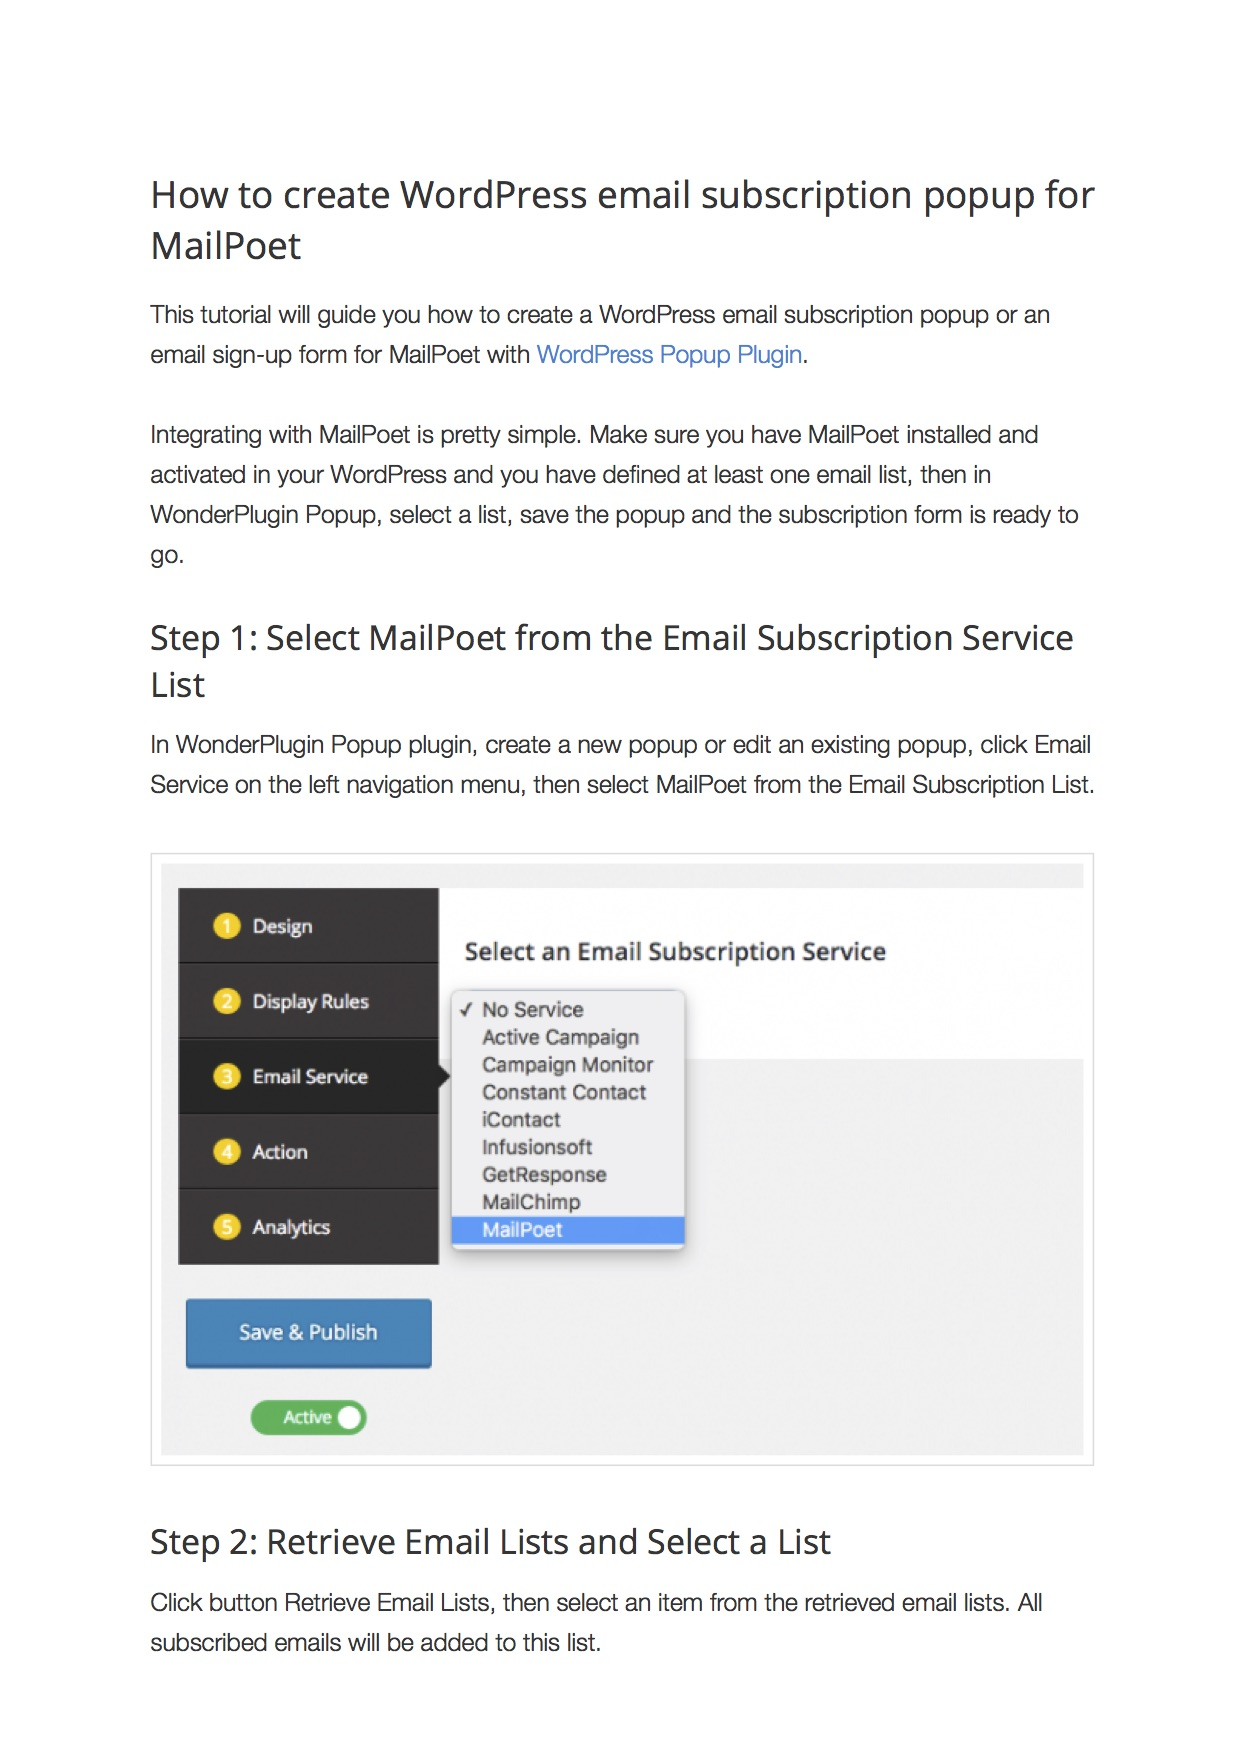 How to create WordPress email subscription form for MailPoet